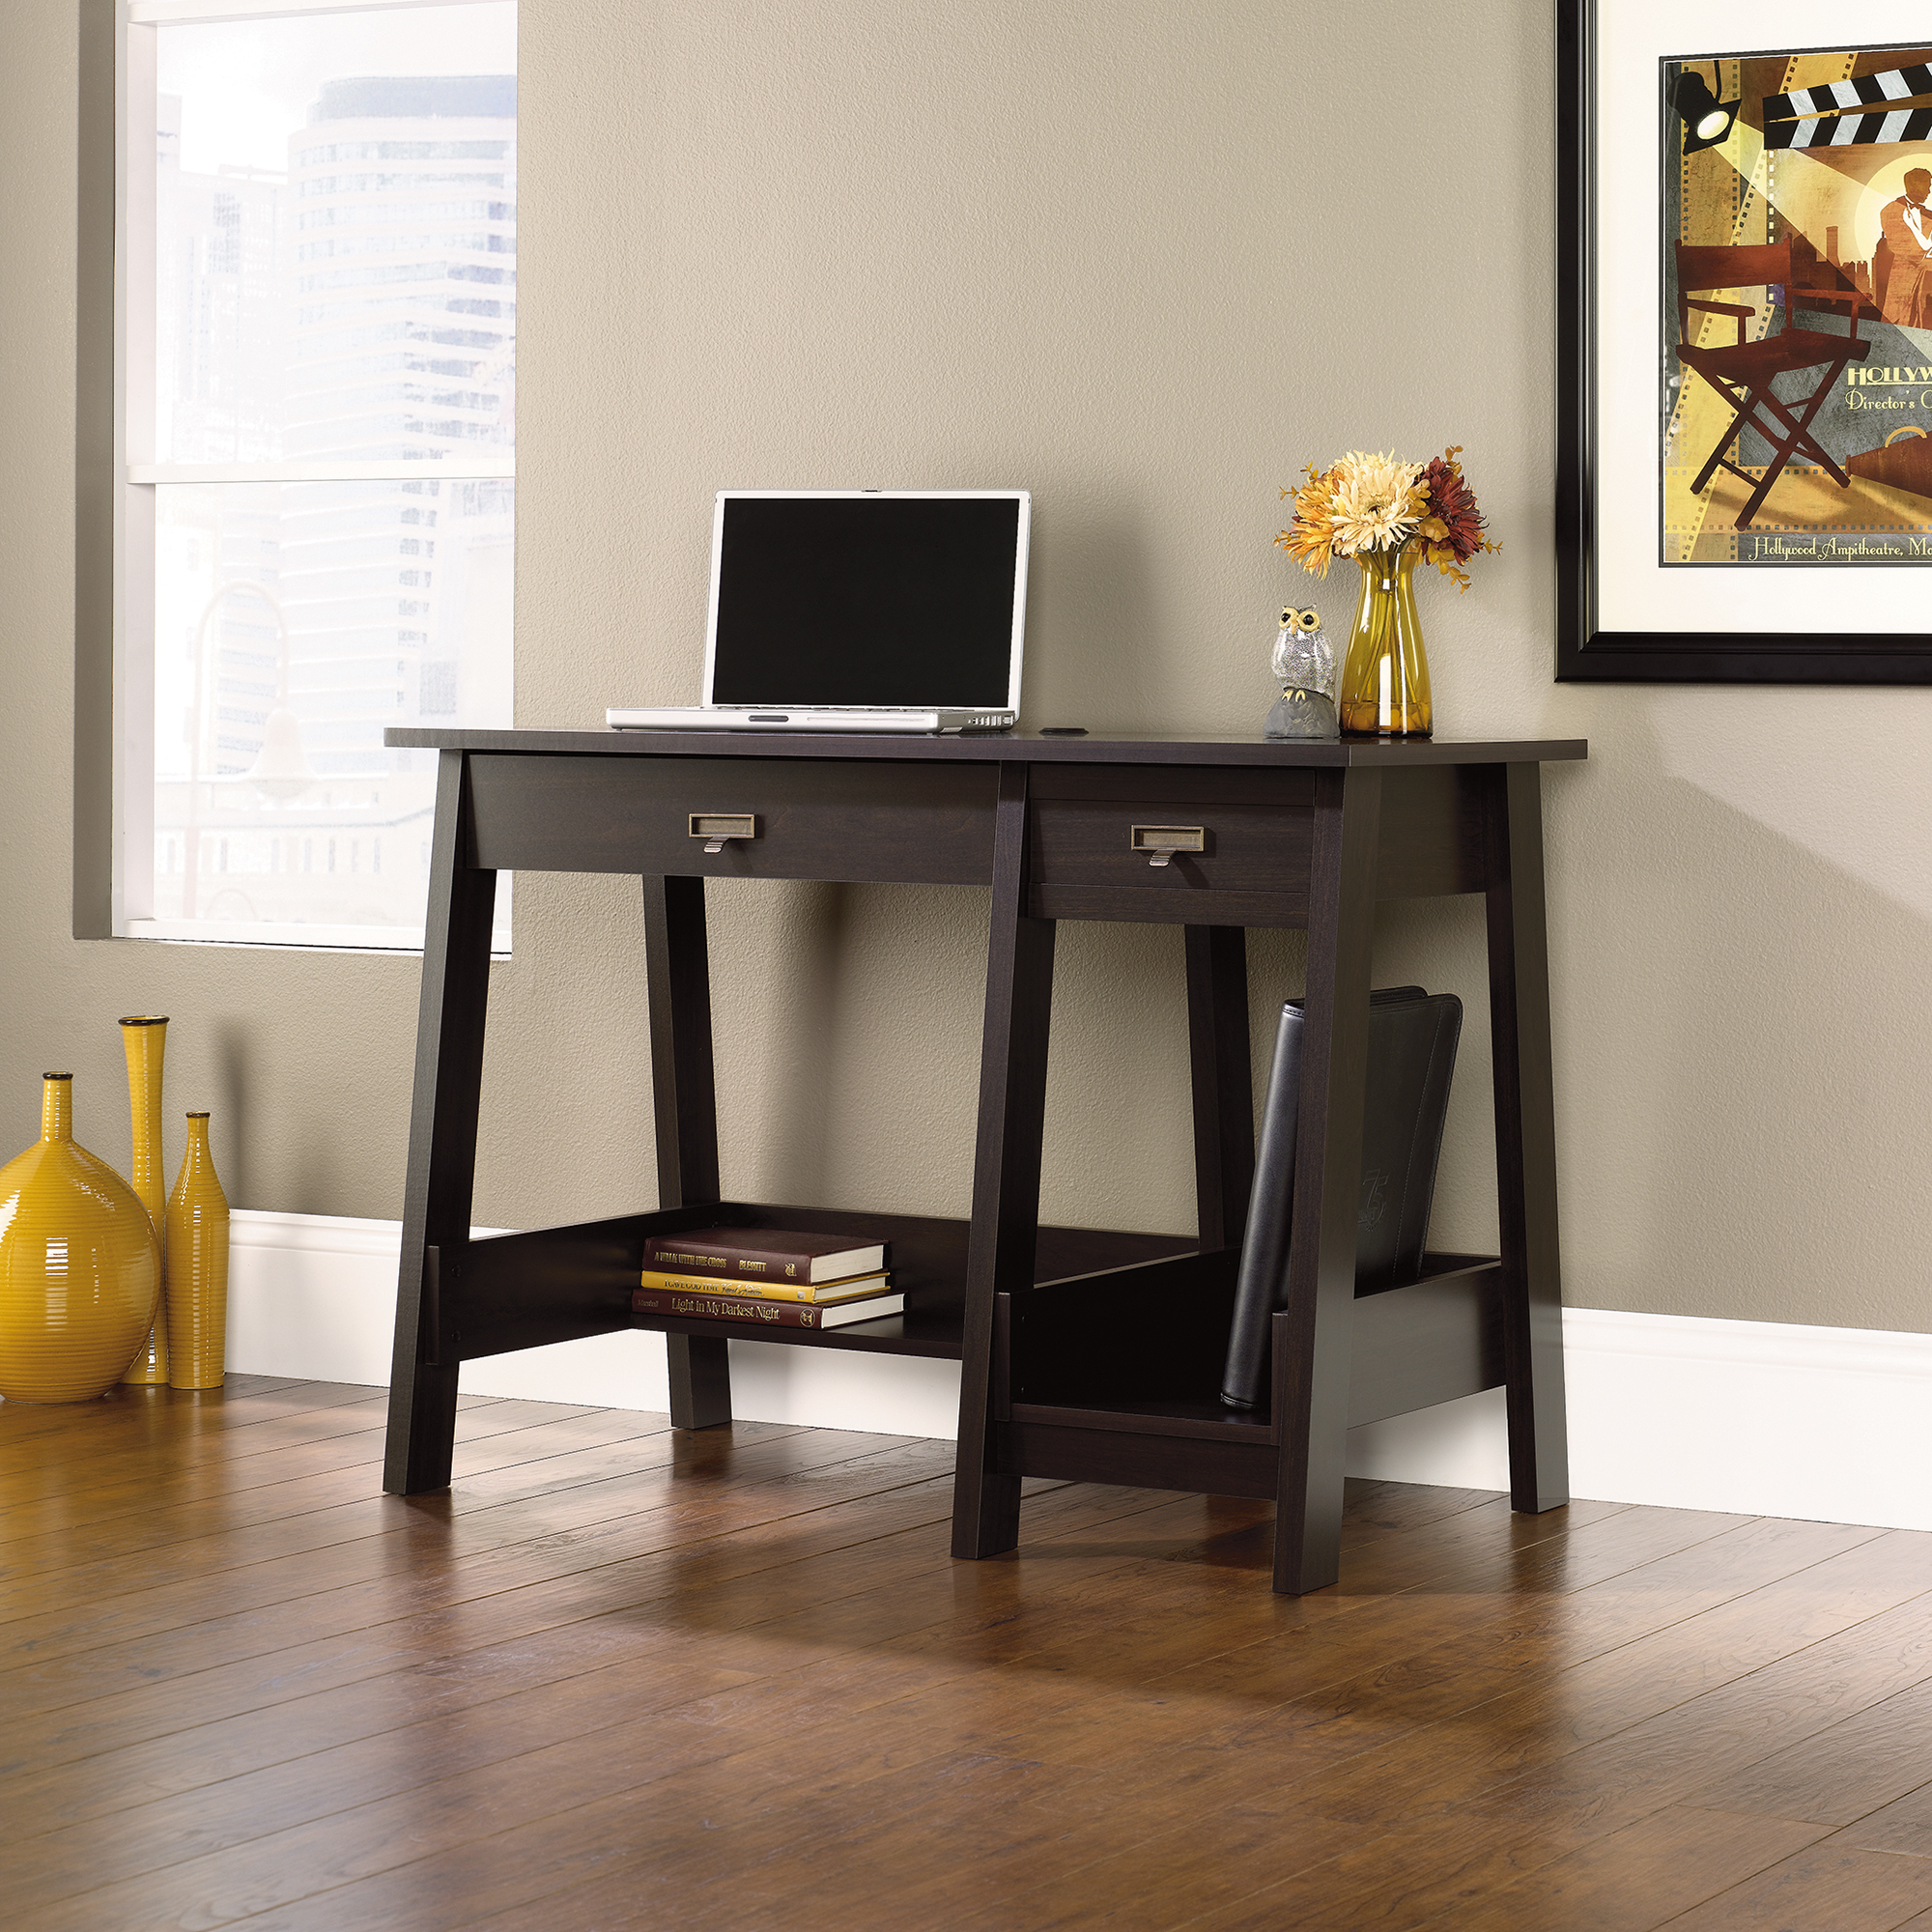 415956 The Furniture Co